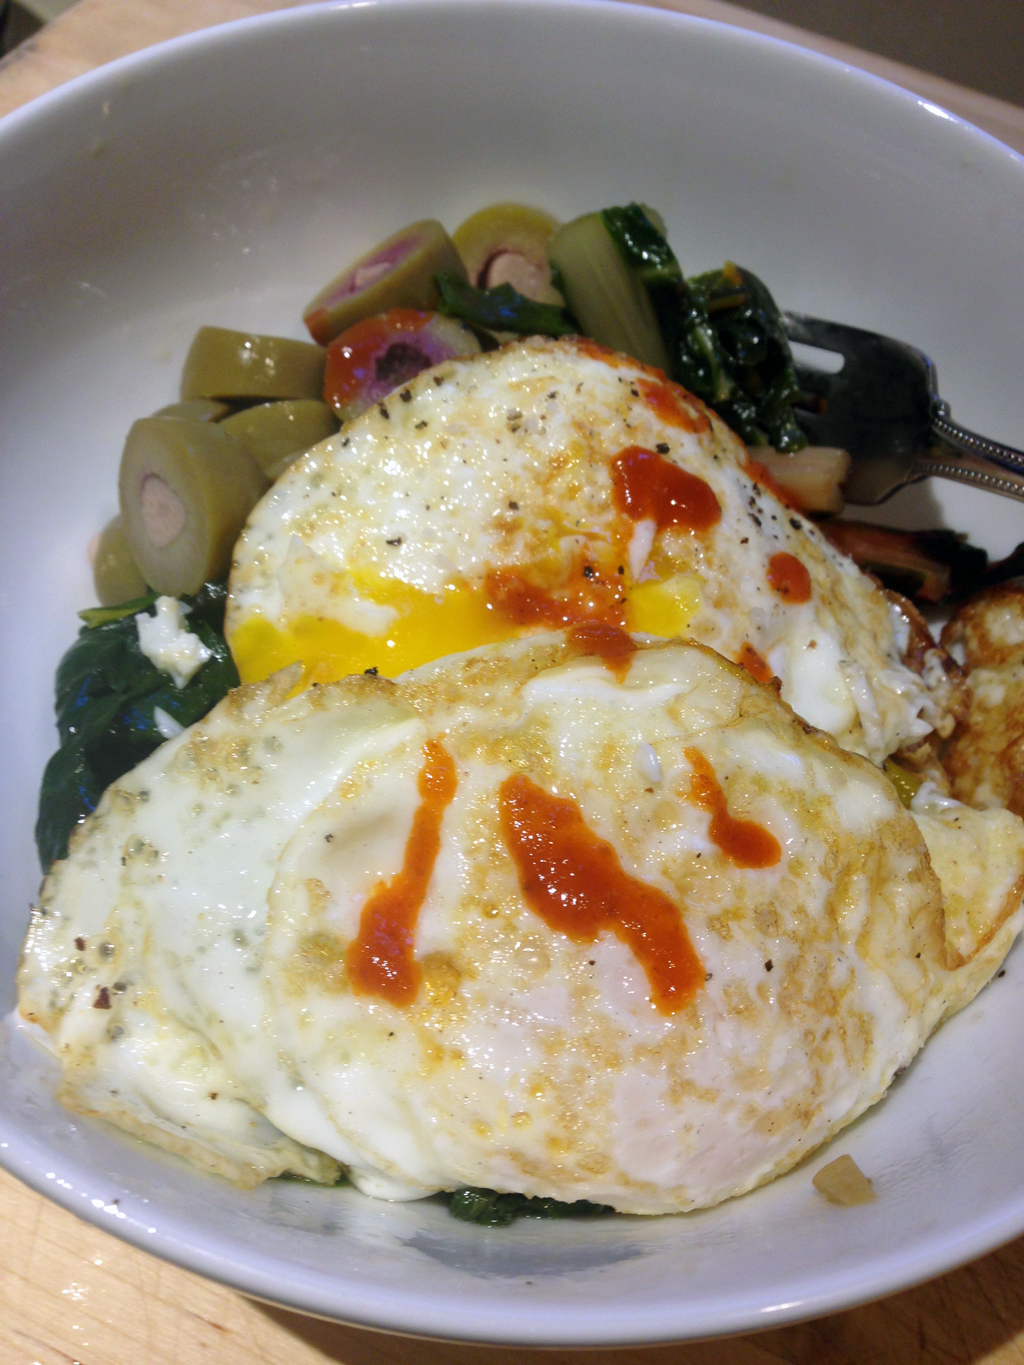 My desperation dinner: brasied chard, sliced olives, eggs, hot sauce.